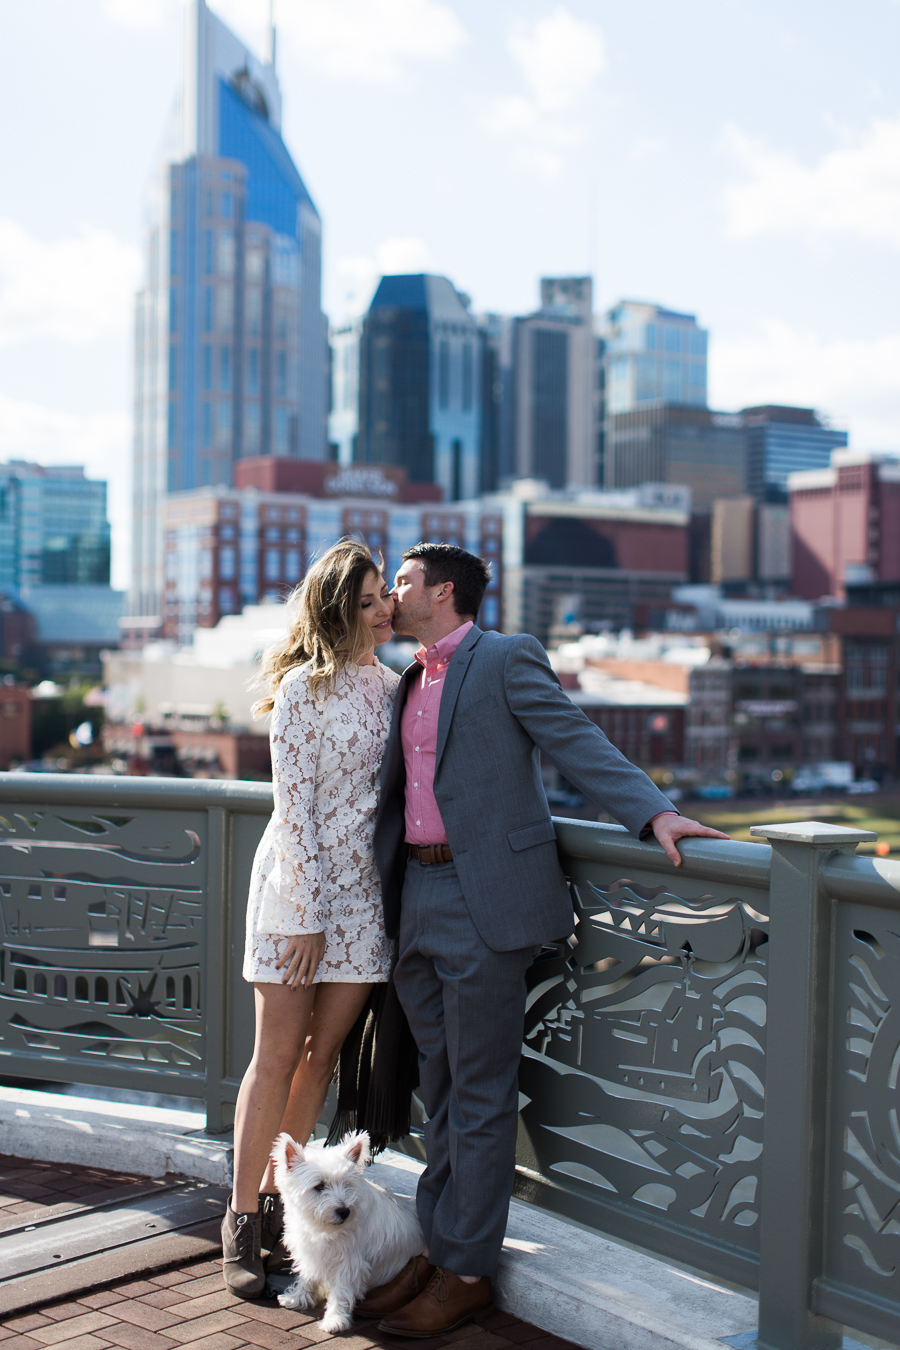 web_robert+nicole_sinema nashville engagement photographs ©2016abigailbobophotography-20.jpg